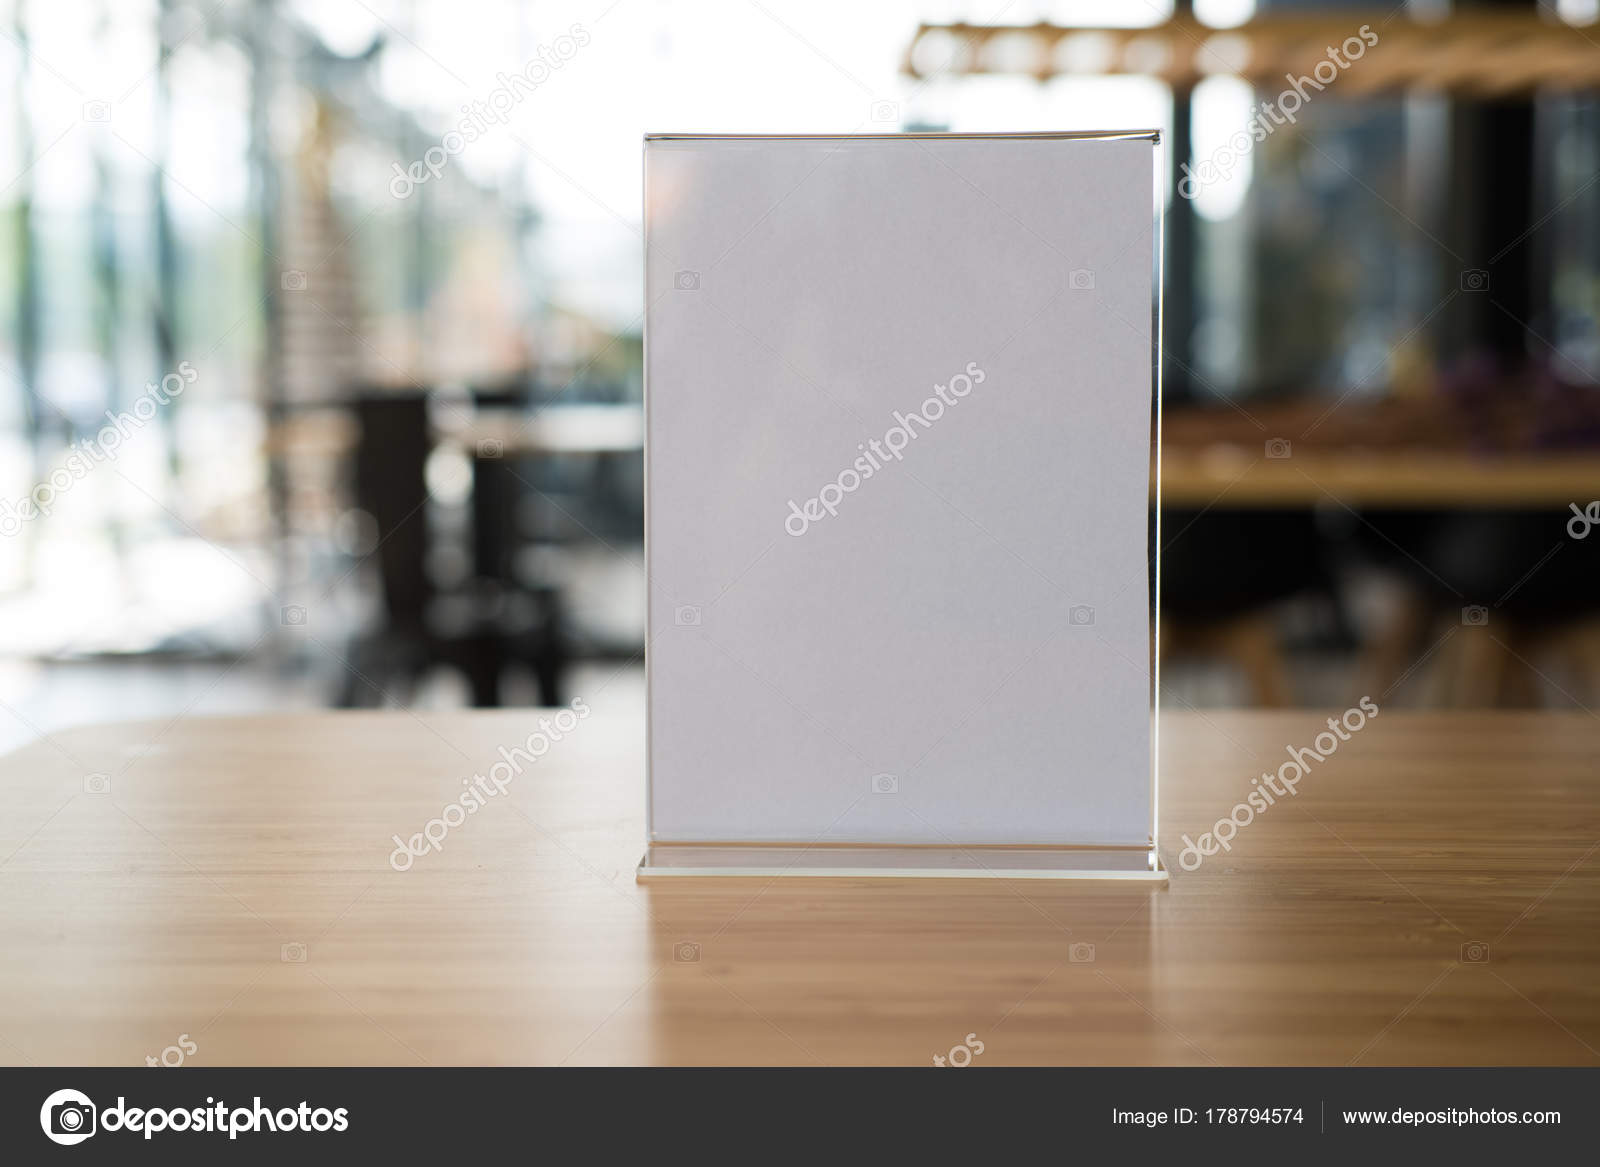 White Label In Cafe Display Stand For Acrylic Tent Card In Coff - Restaurant table tents and menu sign displays